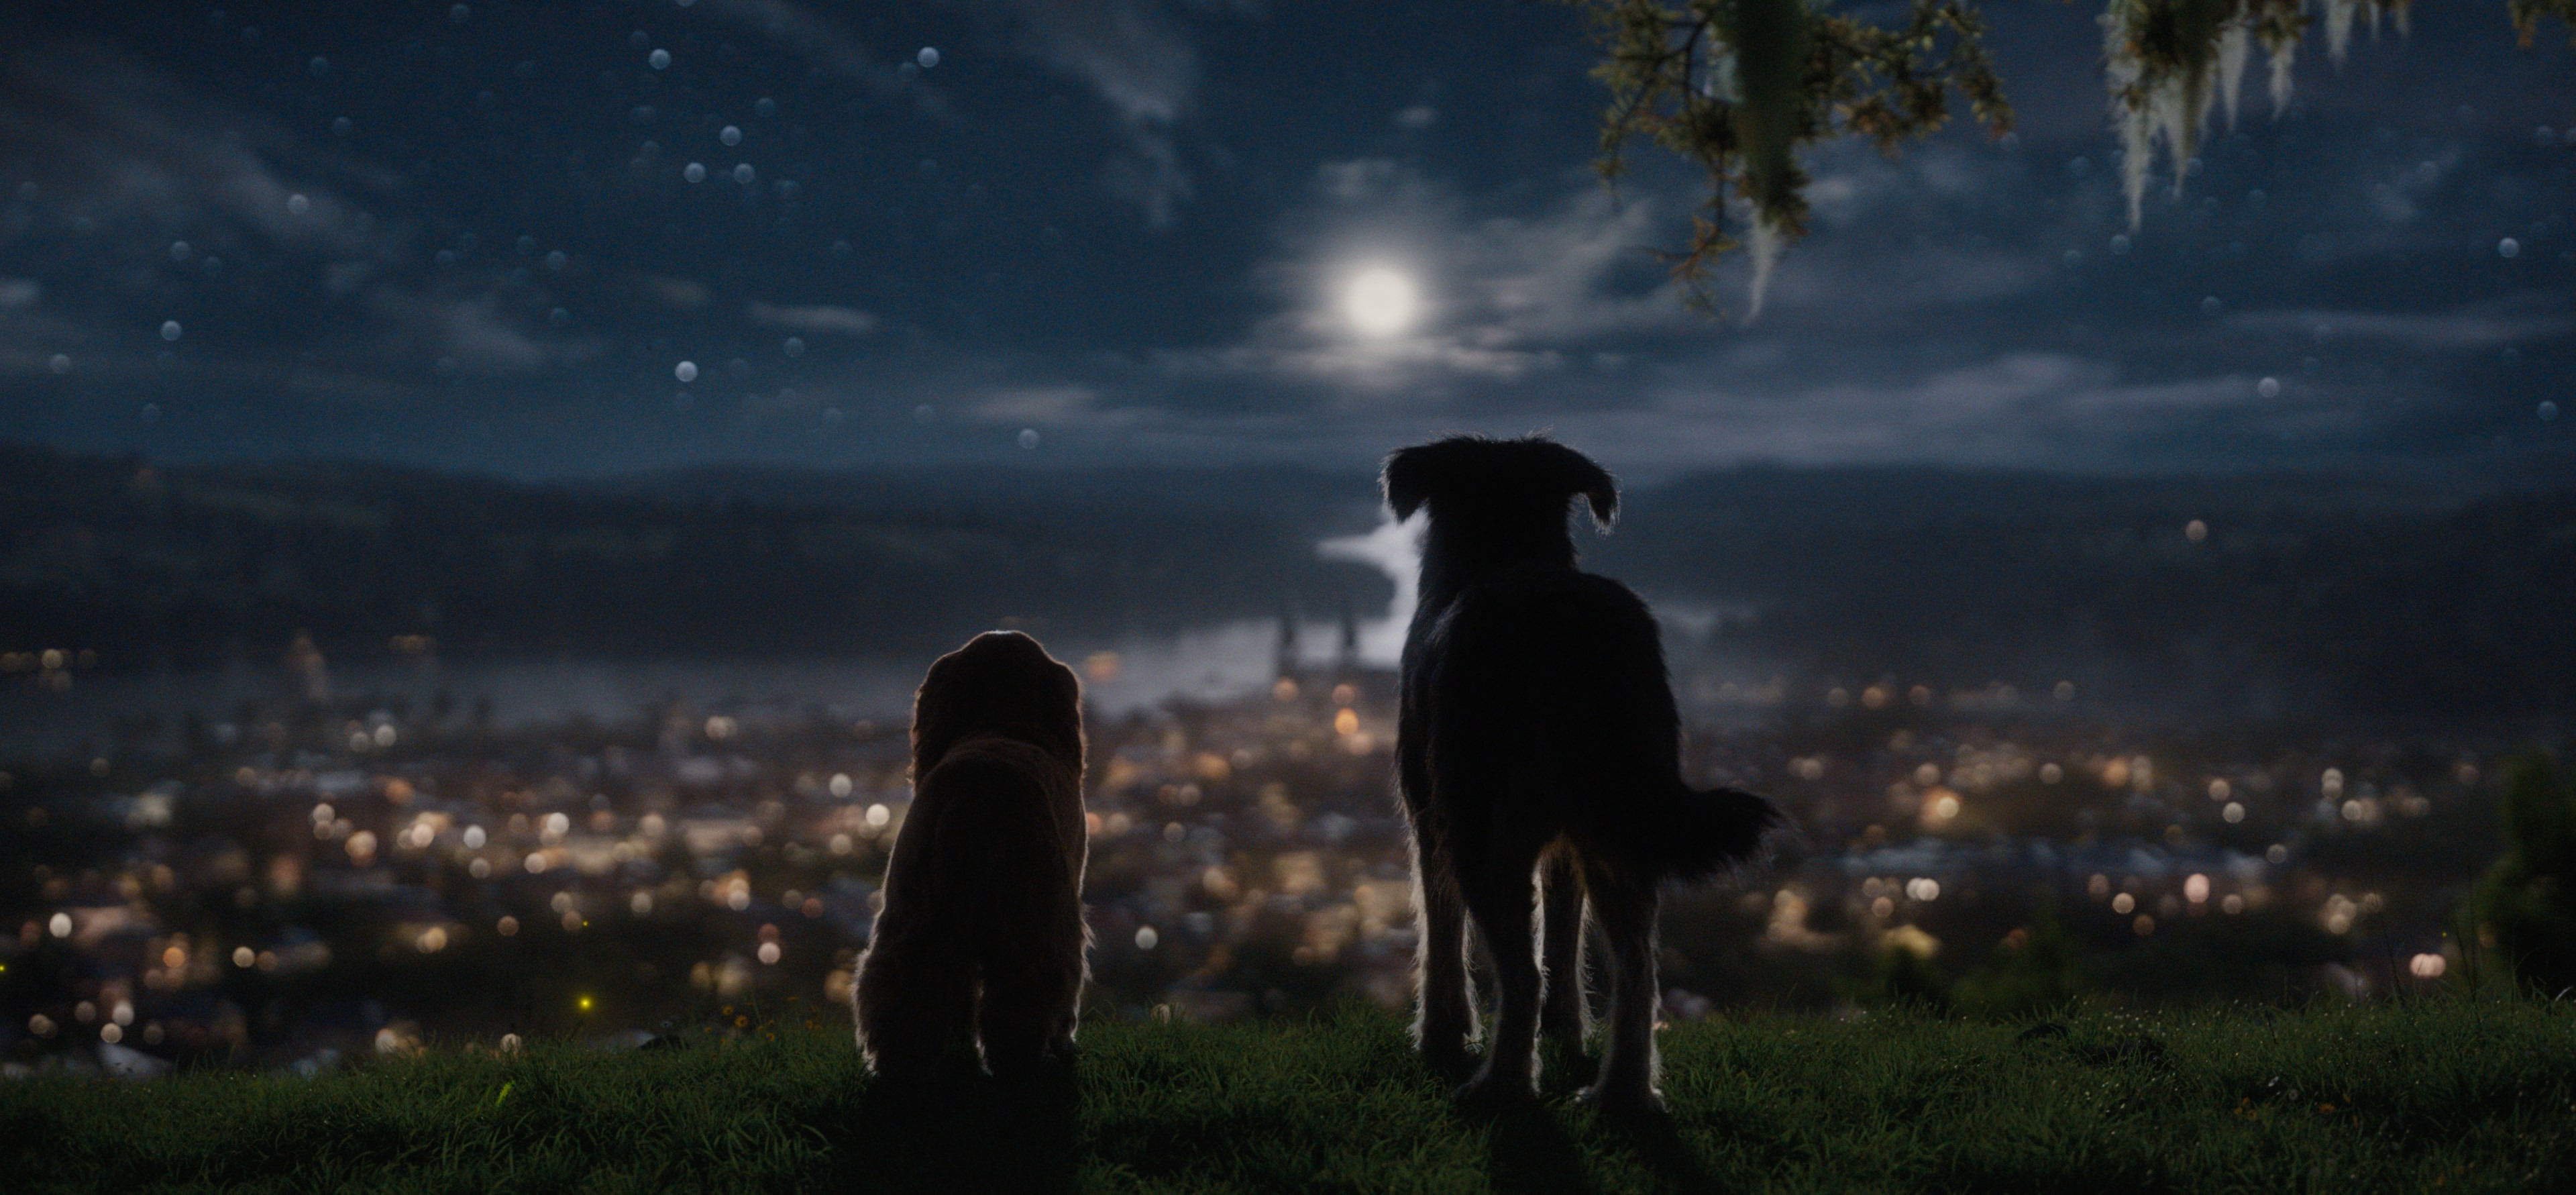 New Trailer Released For Disney S Live Action Remake Of Lady And The Tramp Allears Net